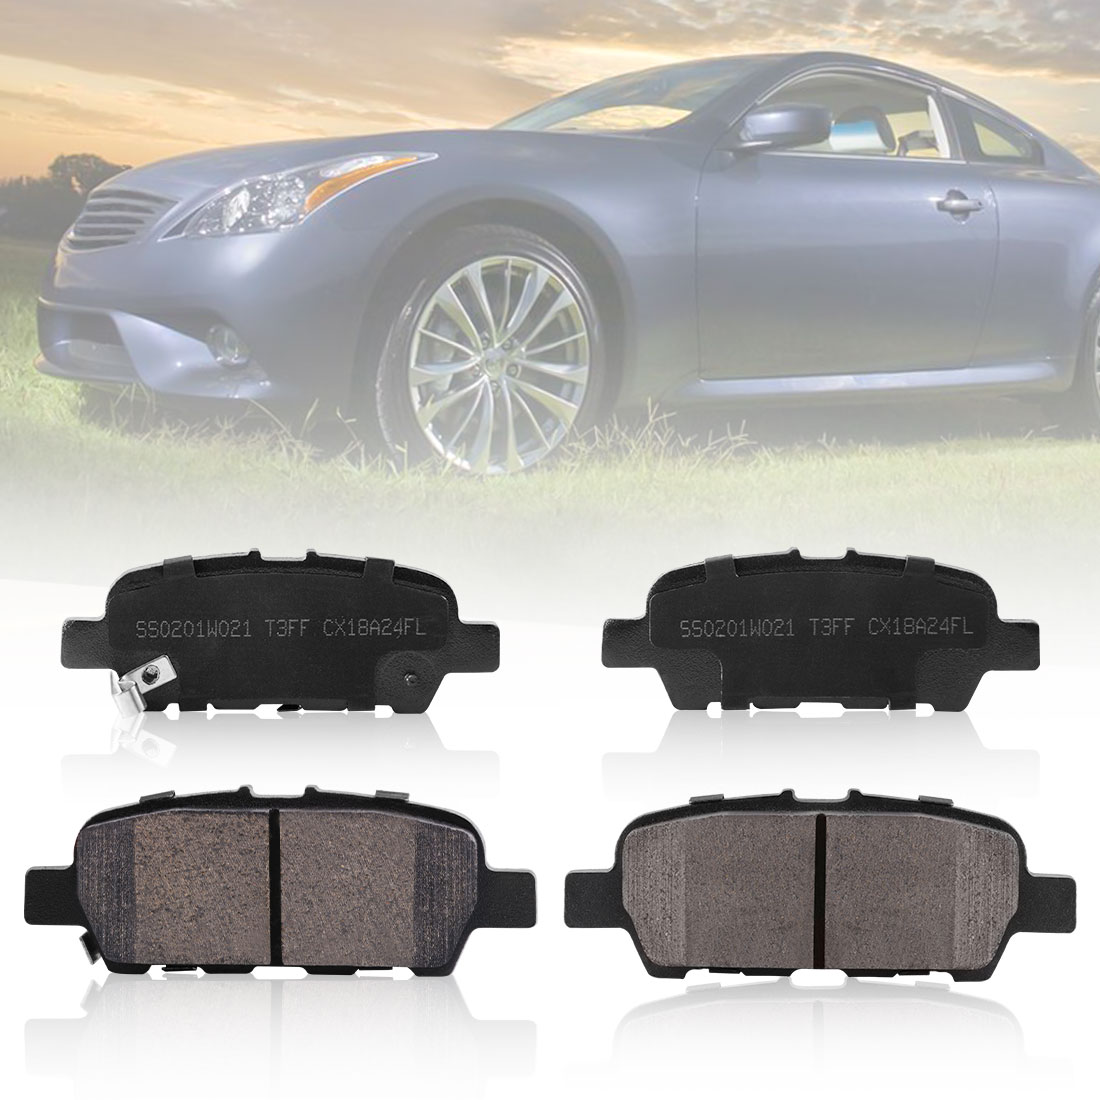 Brake Kits 2006 Fits Infiniti G35 X Front Ceramic Brake Pads with Hardware Kits and Two Years Manufacturer Warranty